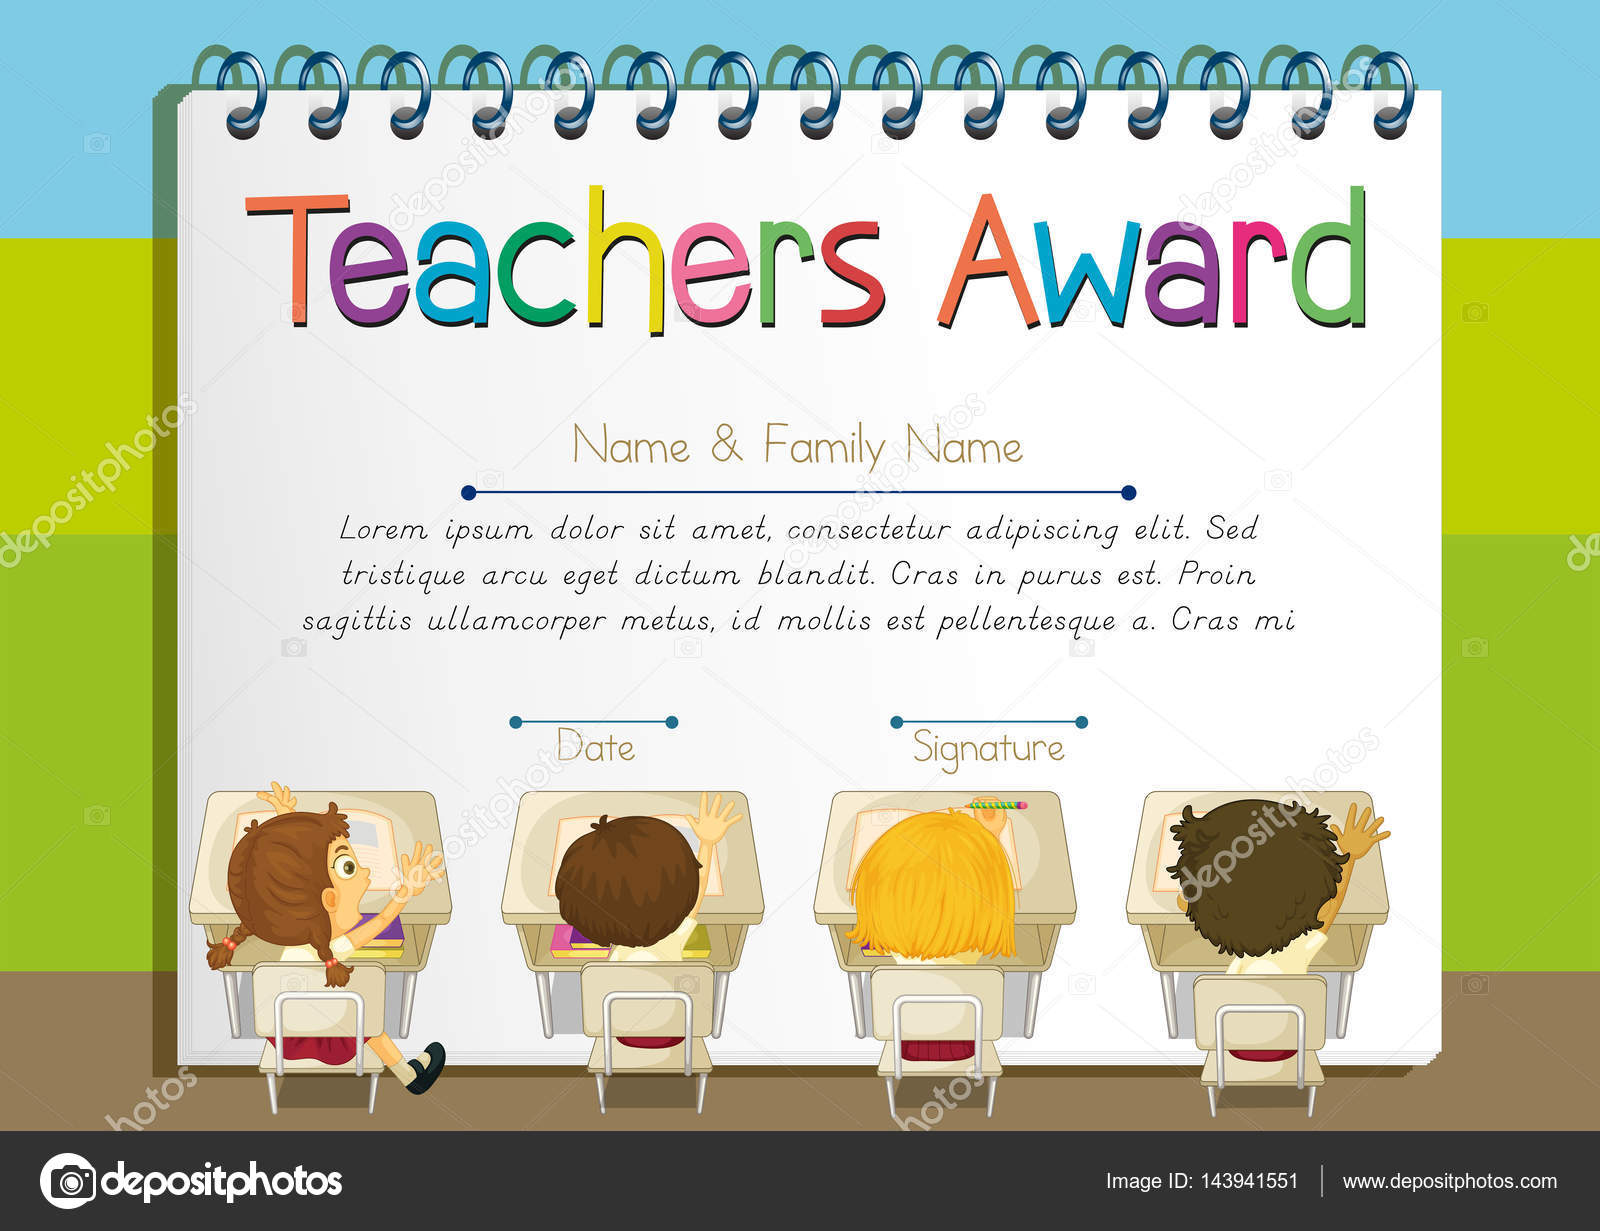 Certificate template for teachers award stock vector certificate template for teachers award illustration vector by interactimages yelopaper Images